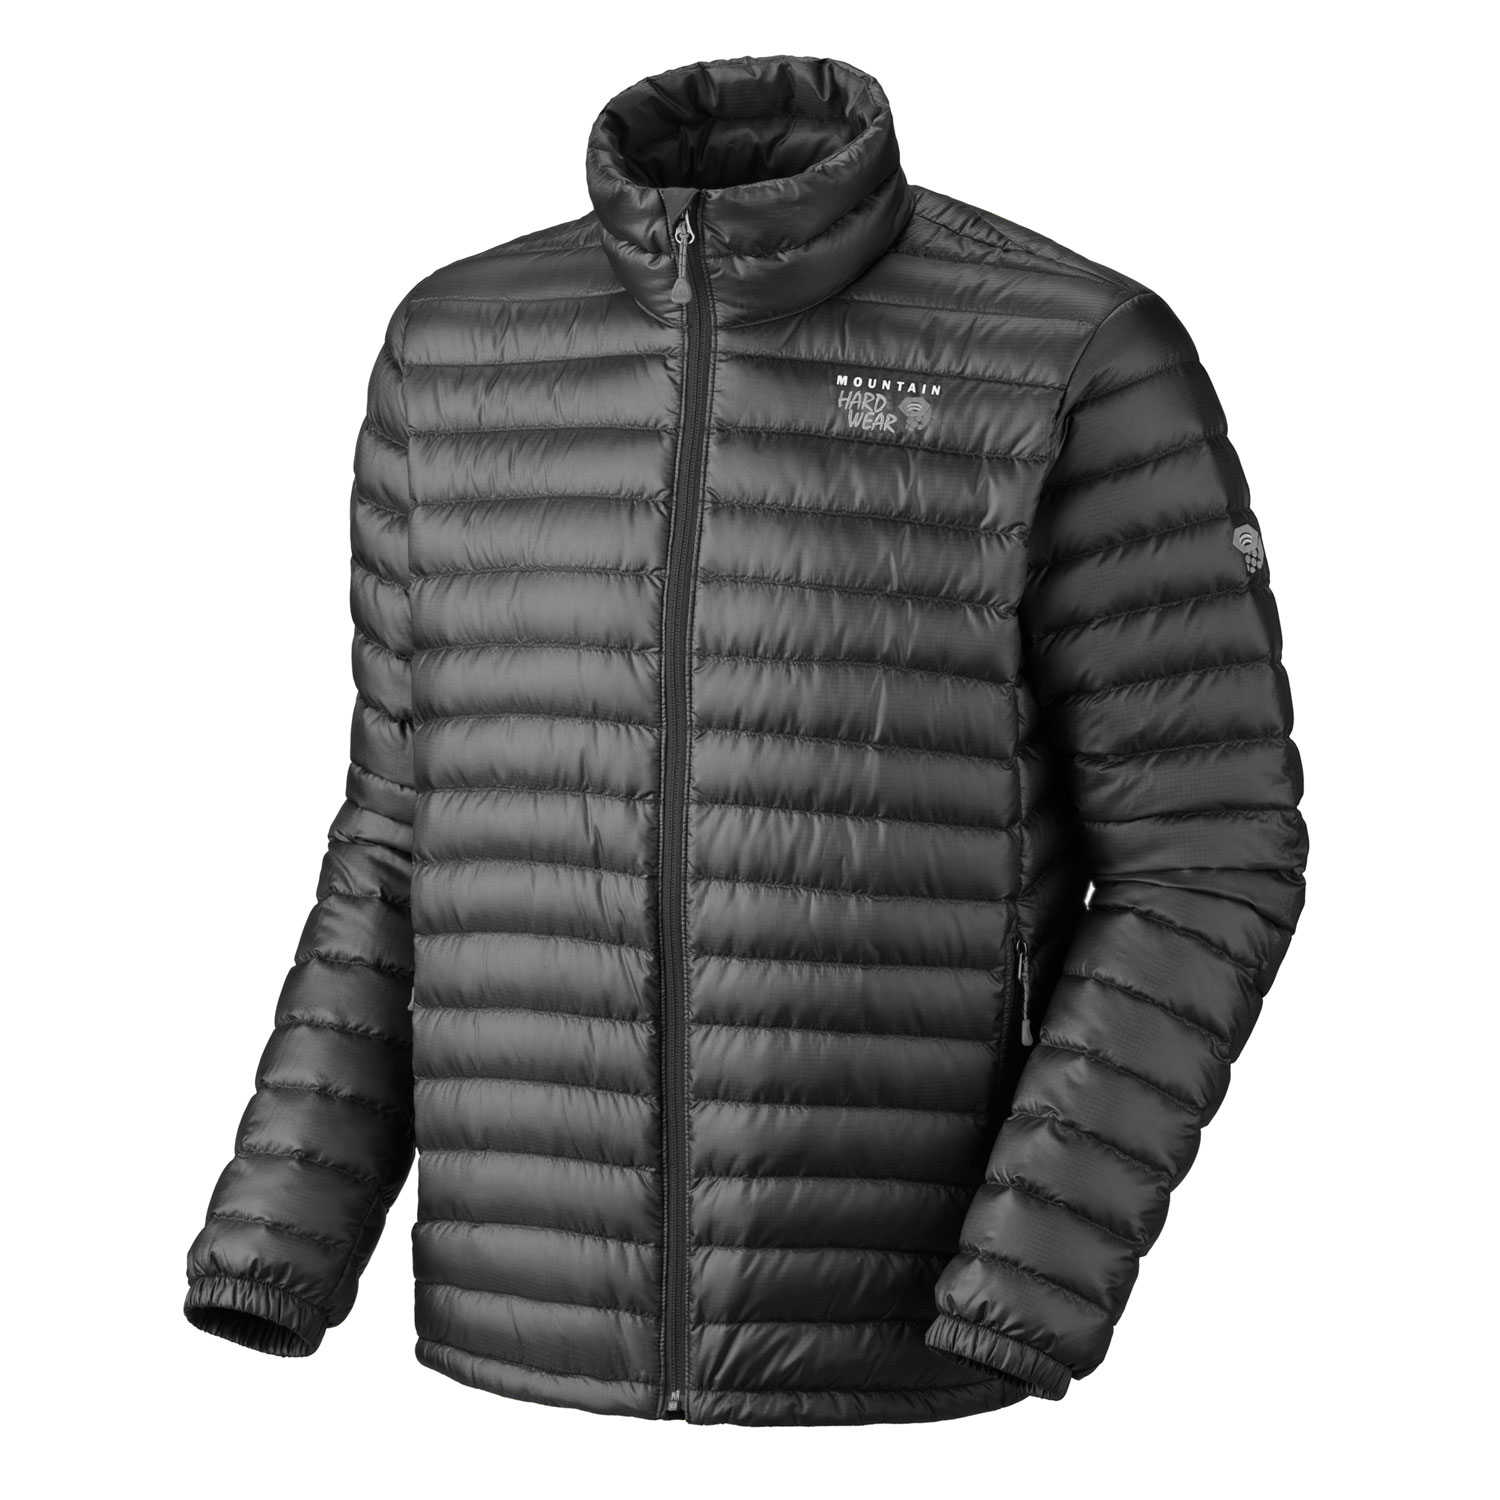 "Key Features of the Mountain Hardwear Nitrous Down Jacket: Avg. weight: 13oz; 355g Center back length: 28"" Fabric: body: Sensor Ripstop (100% polyester) insulation: 800-Fill Goose Down New design Quilted construction holds insulation in place Two front handwarmer pockets Dual hem drawcords seal in warmth Full elastic cuffs slide easily over layers to seal in warmth Micro-Chamois - lined chin guard prevents zipper chafe DWR finish repels water - $153.95"